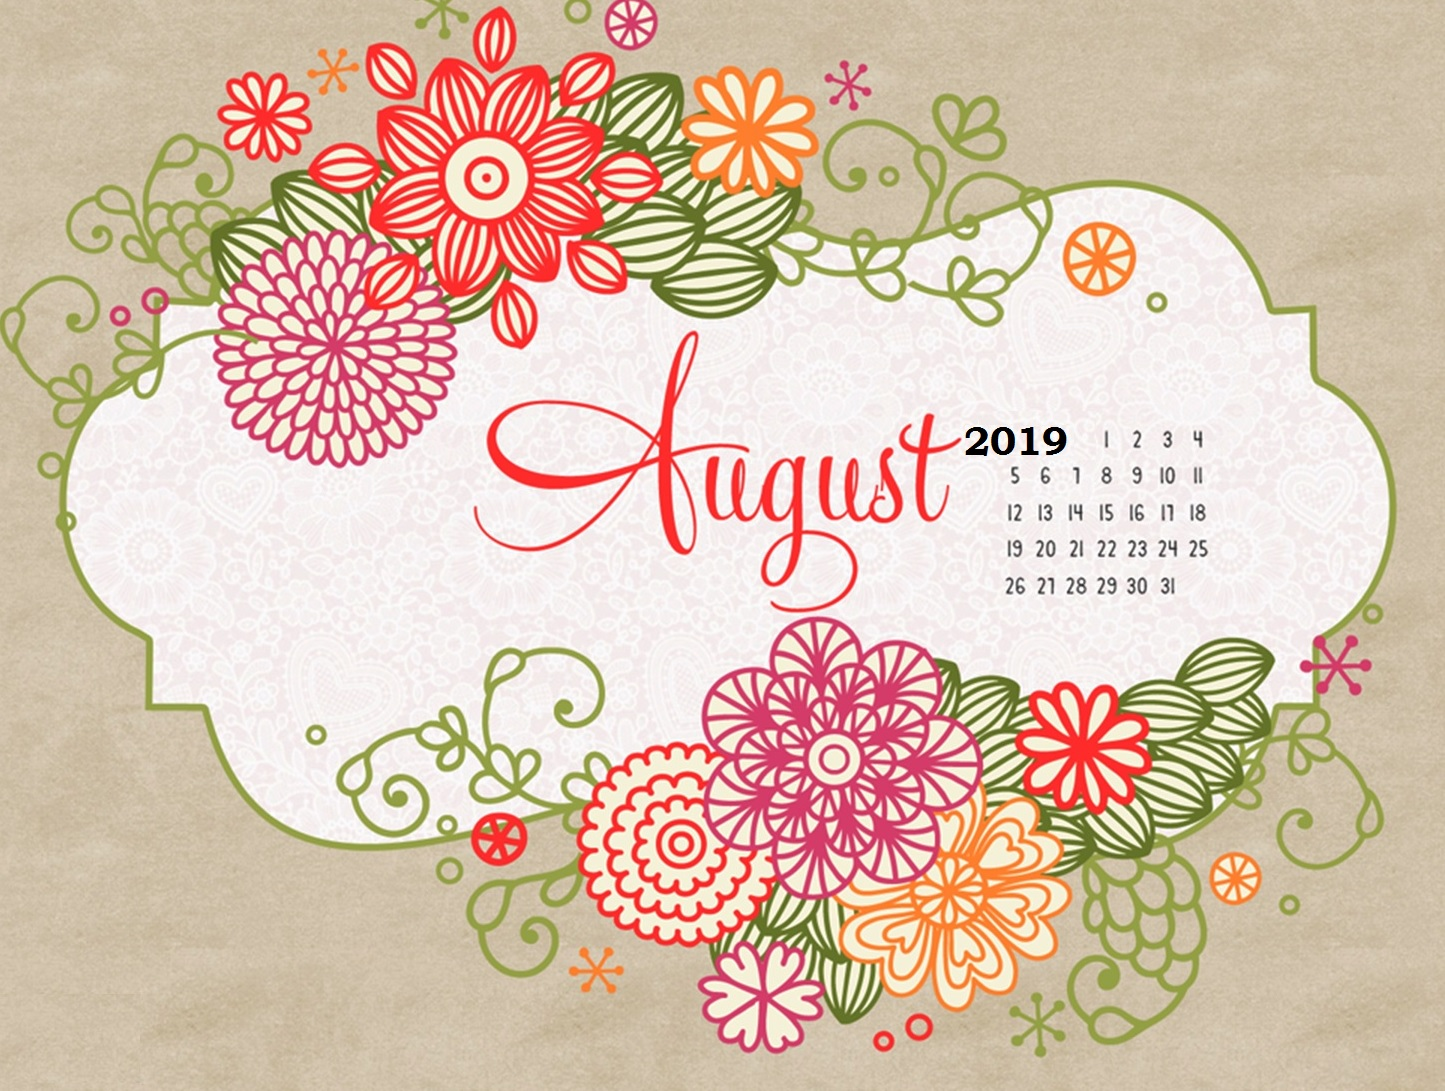 Latest August 2019 Calendar Design